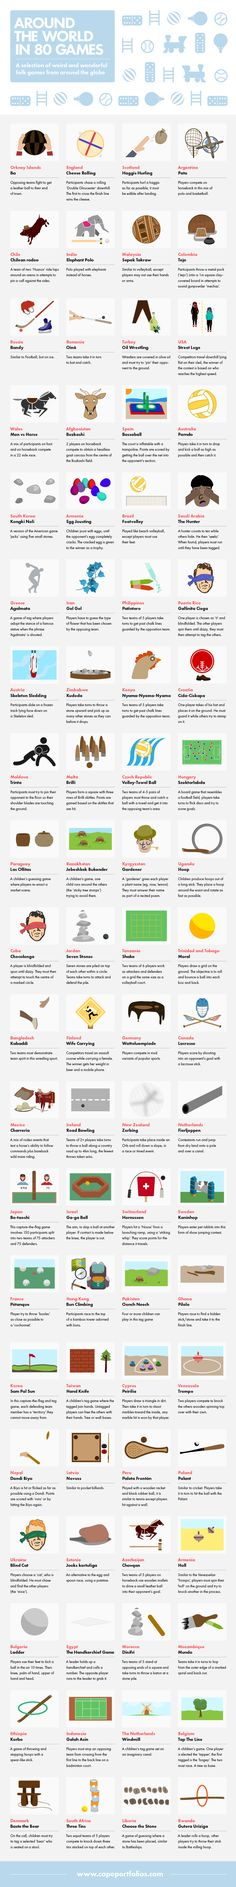 ​Everyone loves a good game, but what we play is very much dependent on our location and our culture. This infographic chronicles all the weird and wonderful games played around the world. How many have you played?